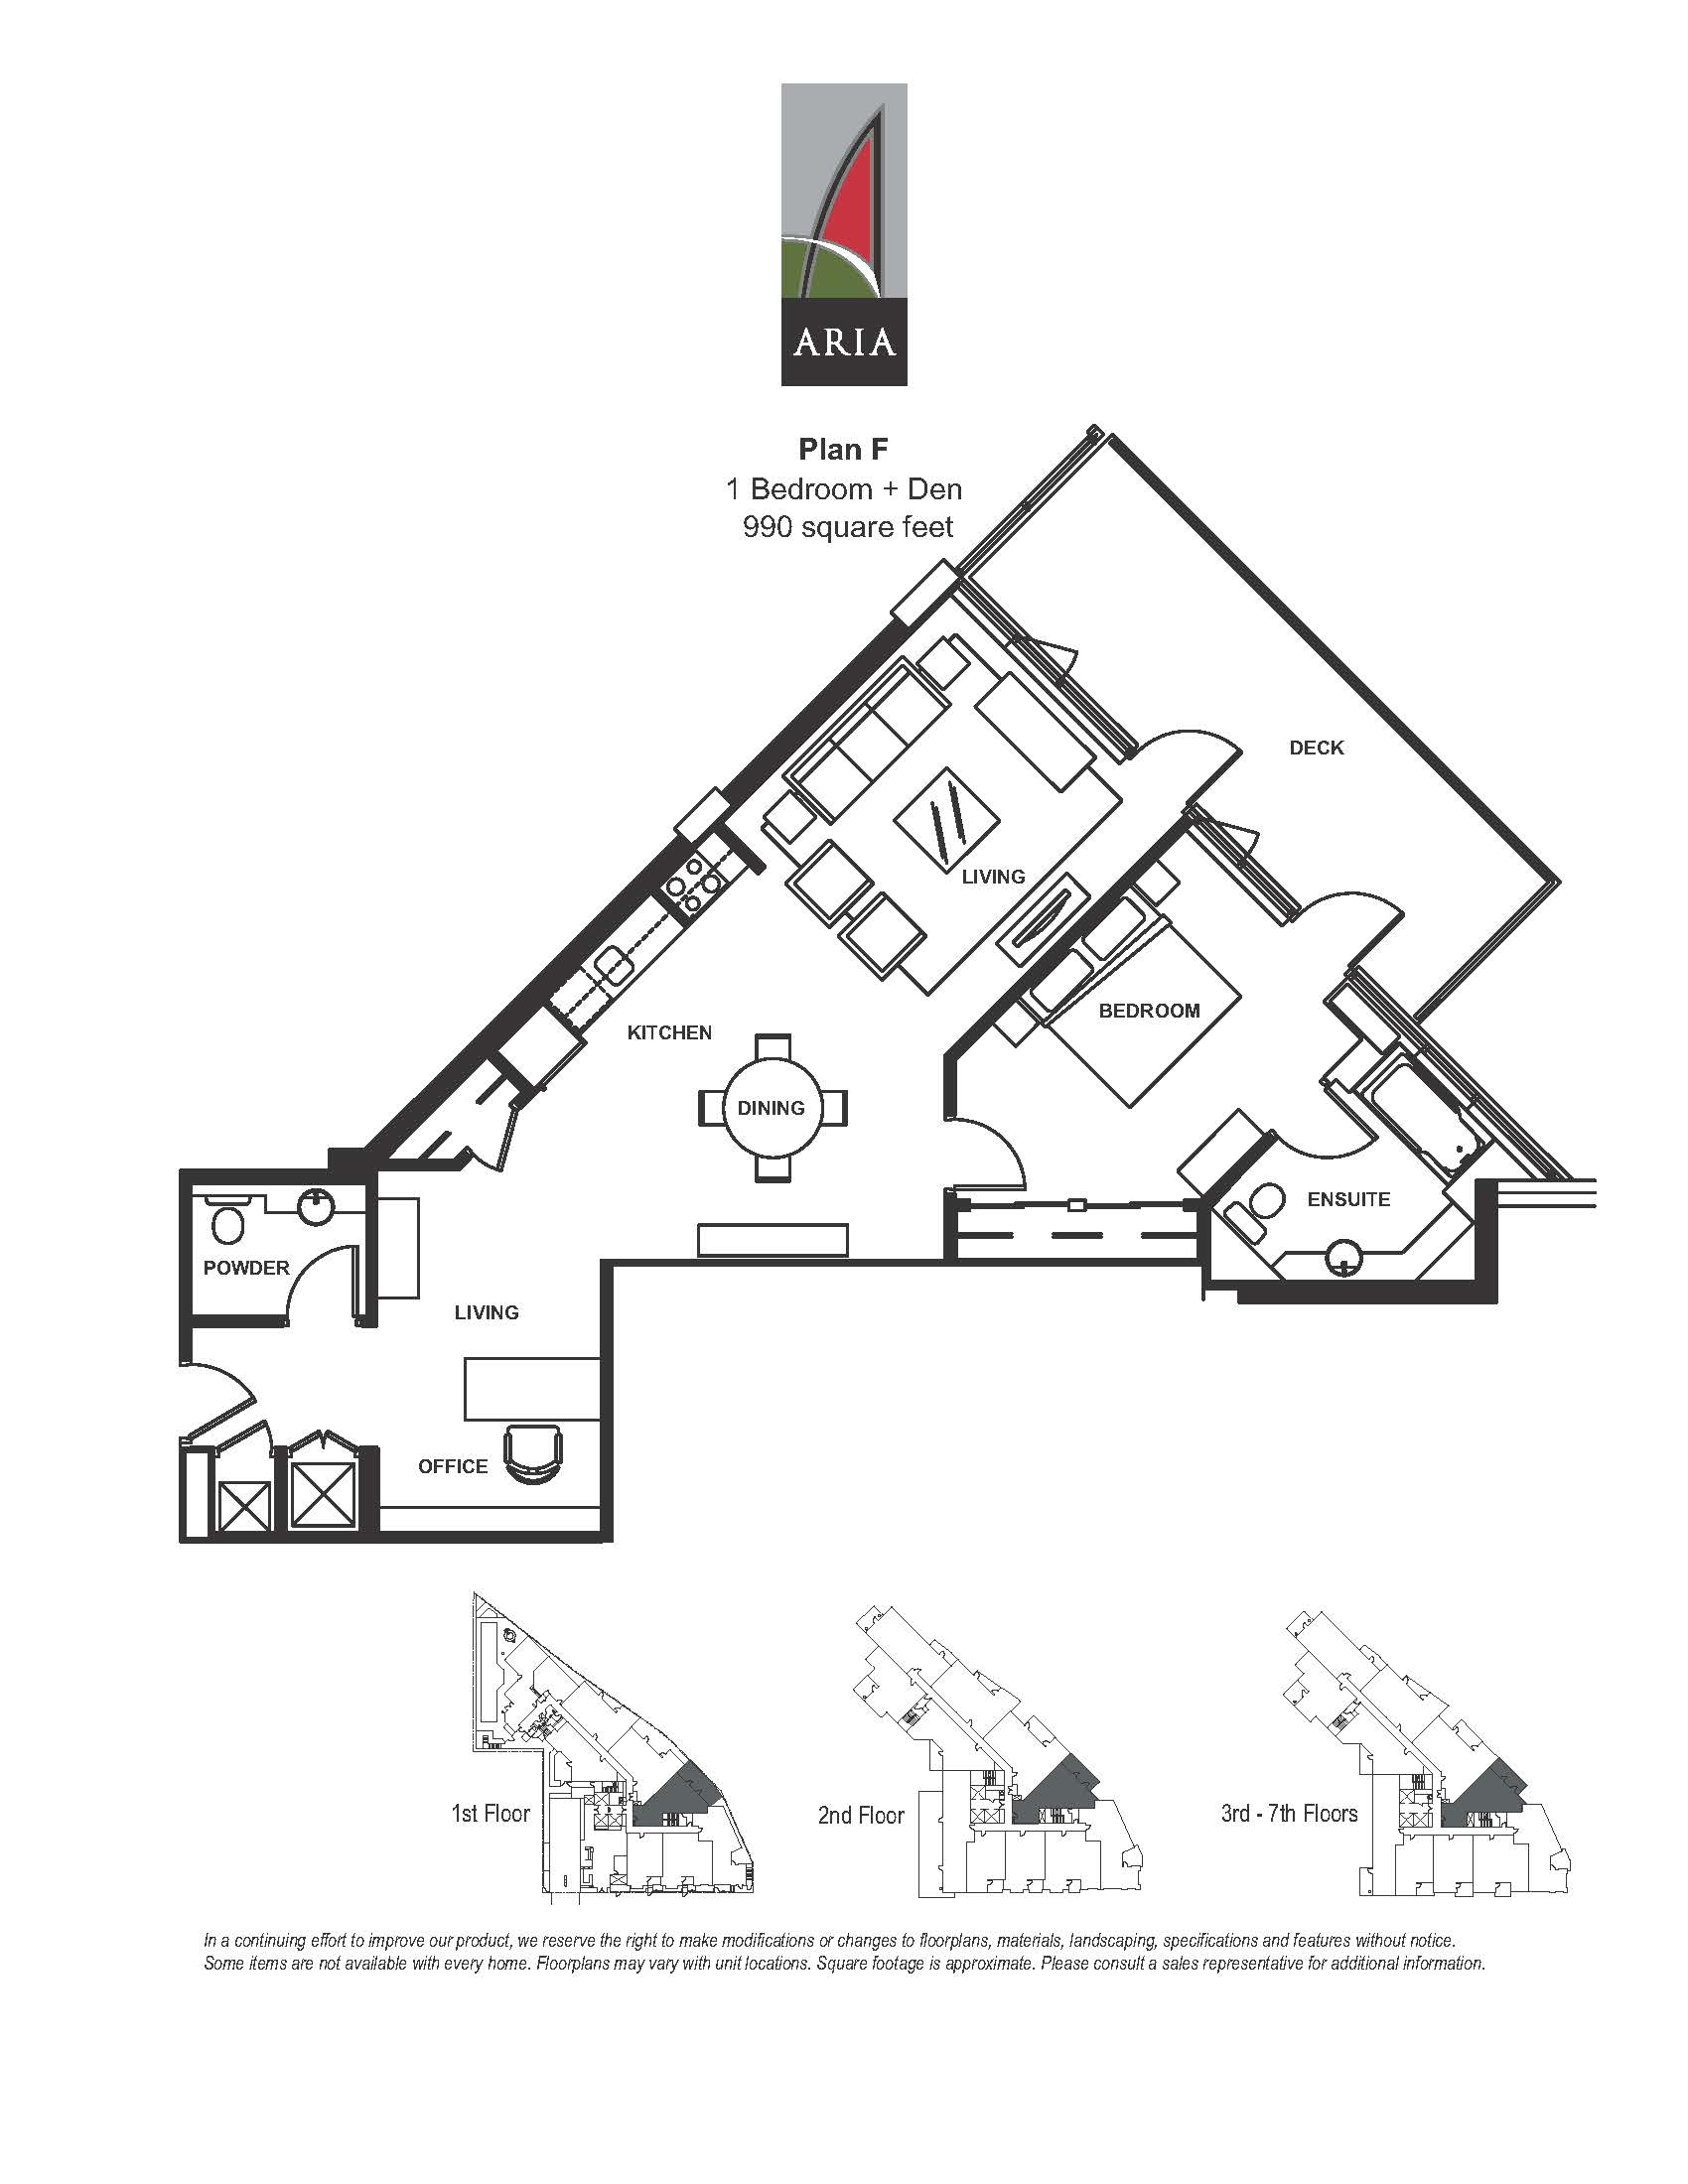 Aria 1 Bedroom – Plan F